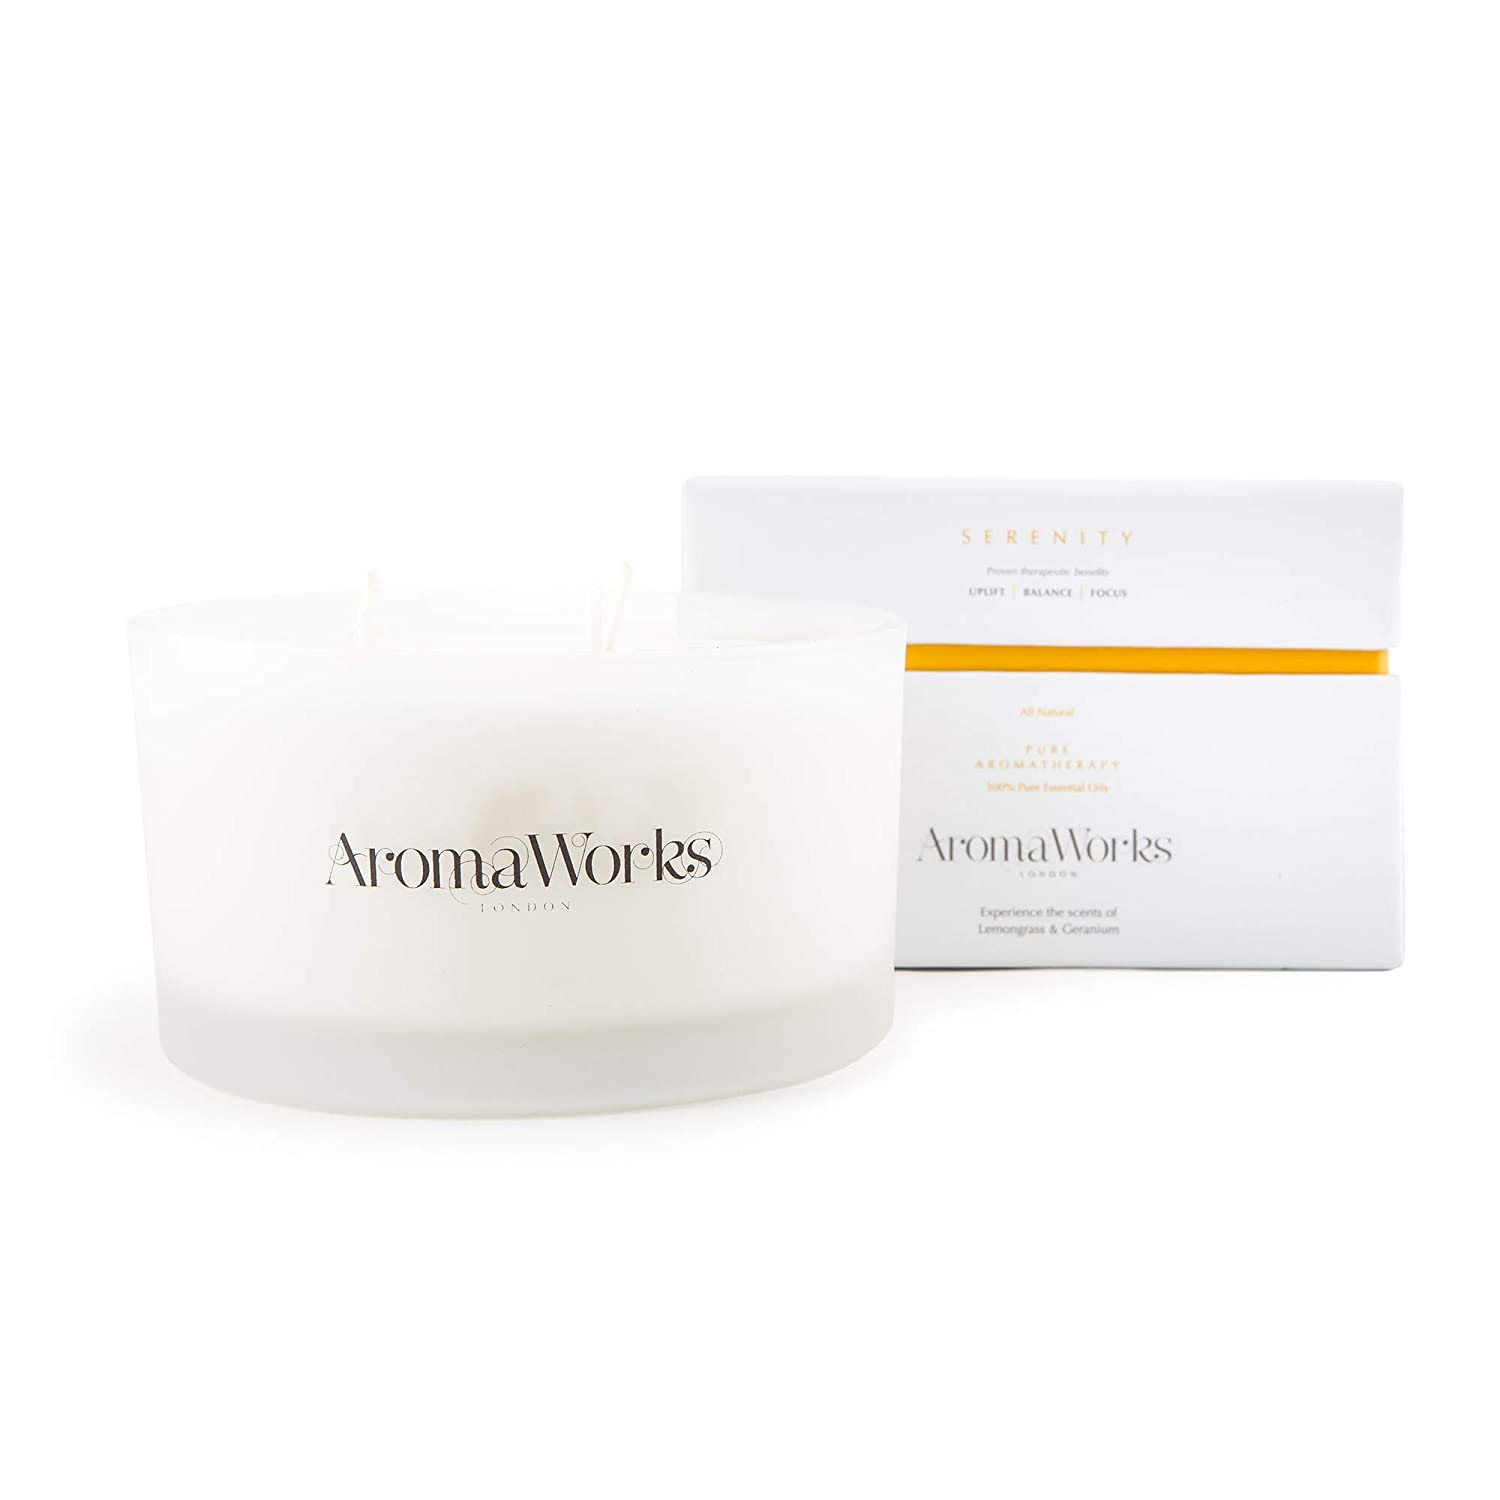 AromaWorks Serenity 3 Wick Soy Wax Candle - Lemongrass, Neroli and Sweet Geranium Aromas - Uplift, Balance & Focus - Natural, Vegan, Cruelty Free - Large 14.1oz